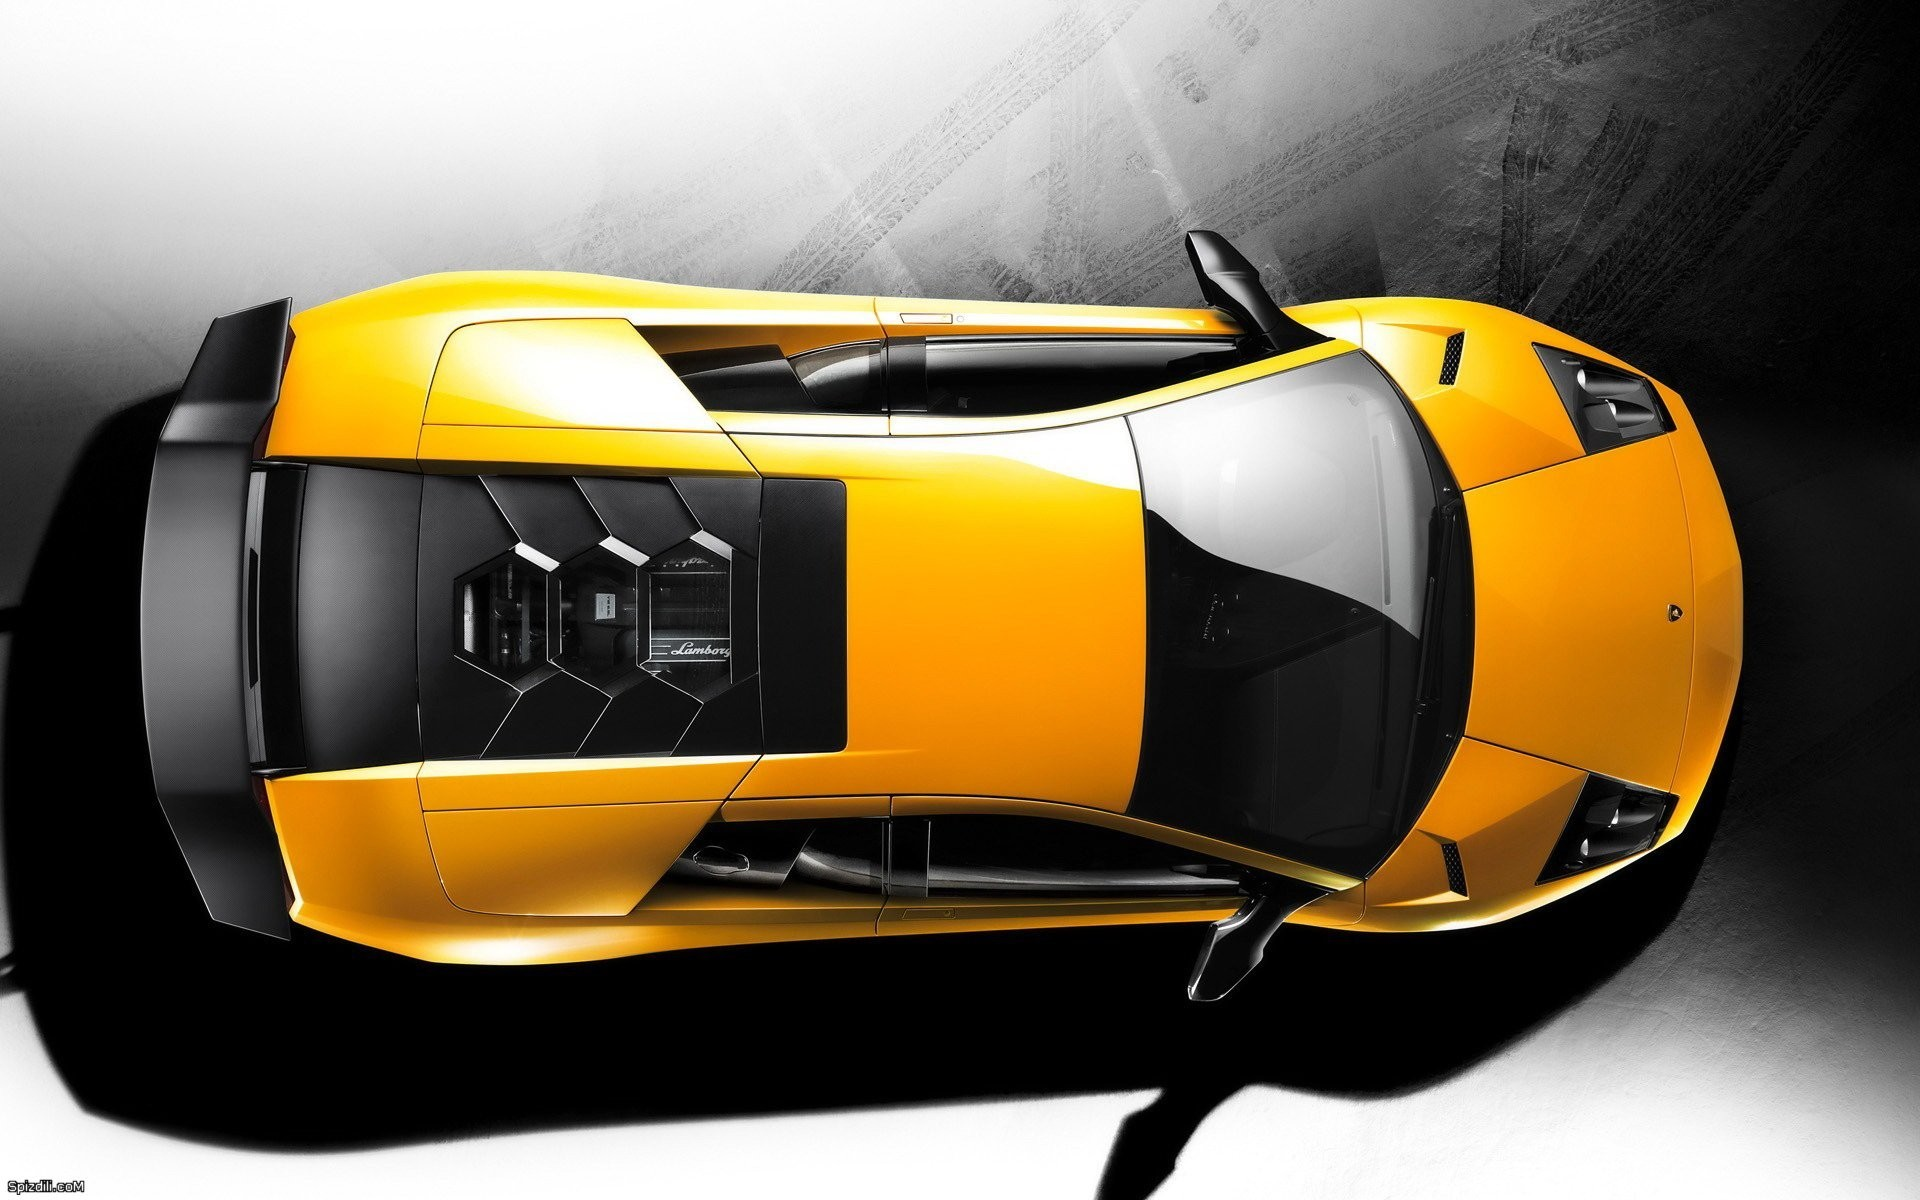 cars Lamborghini Supercars lamborghini HD Wallpaper